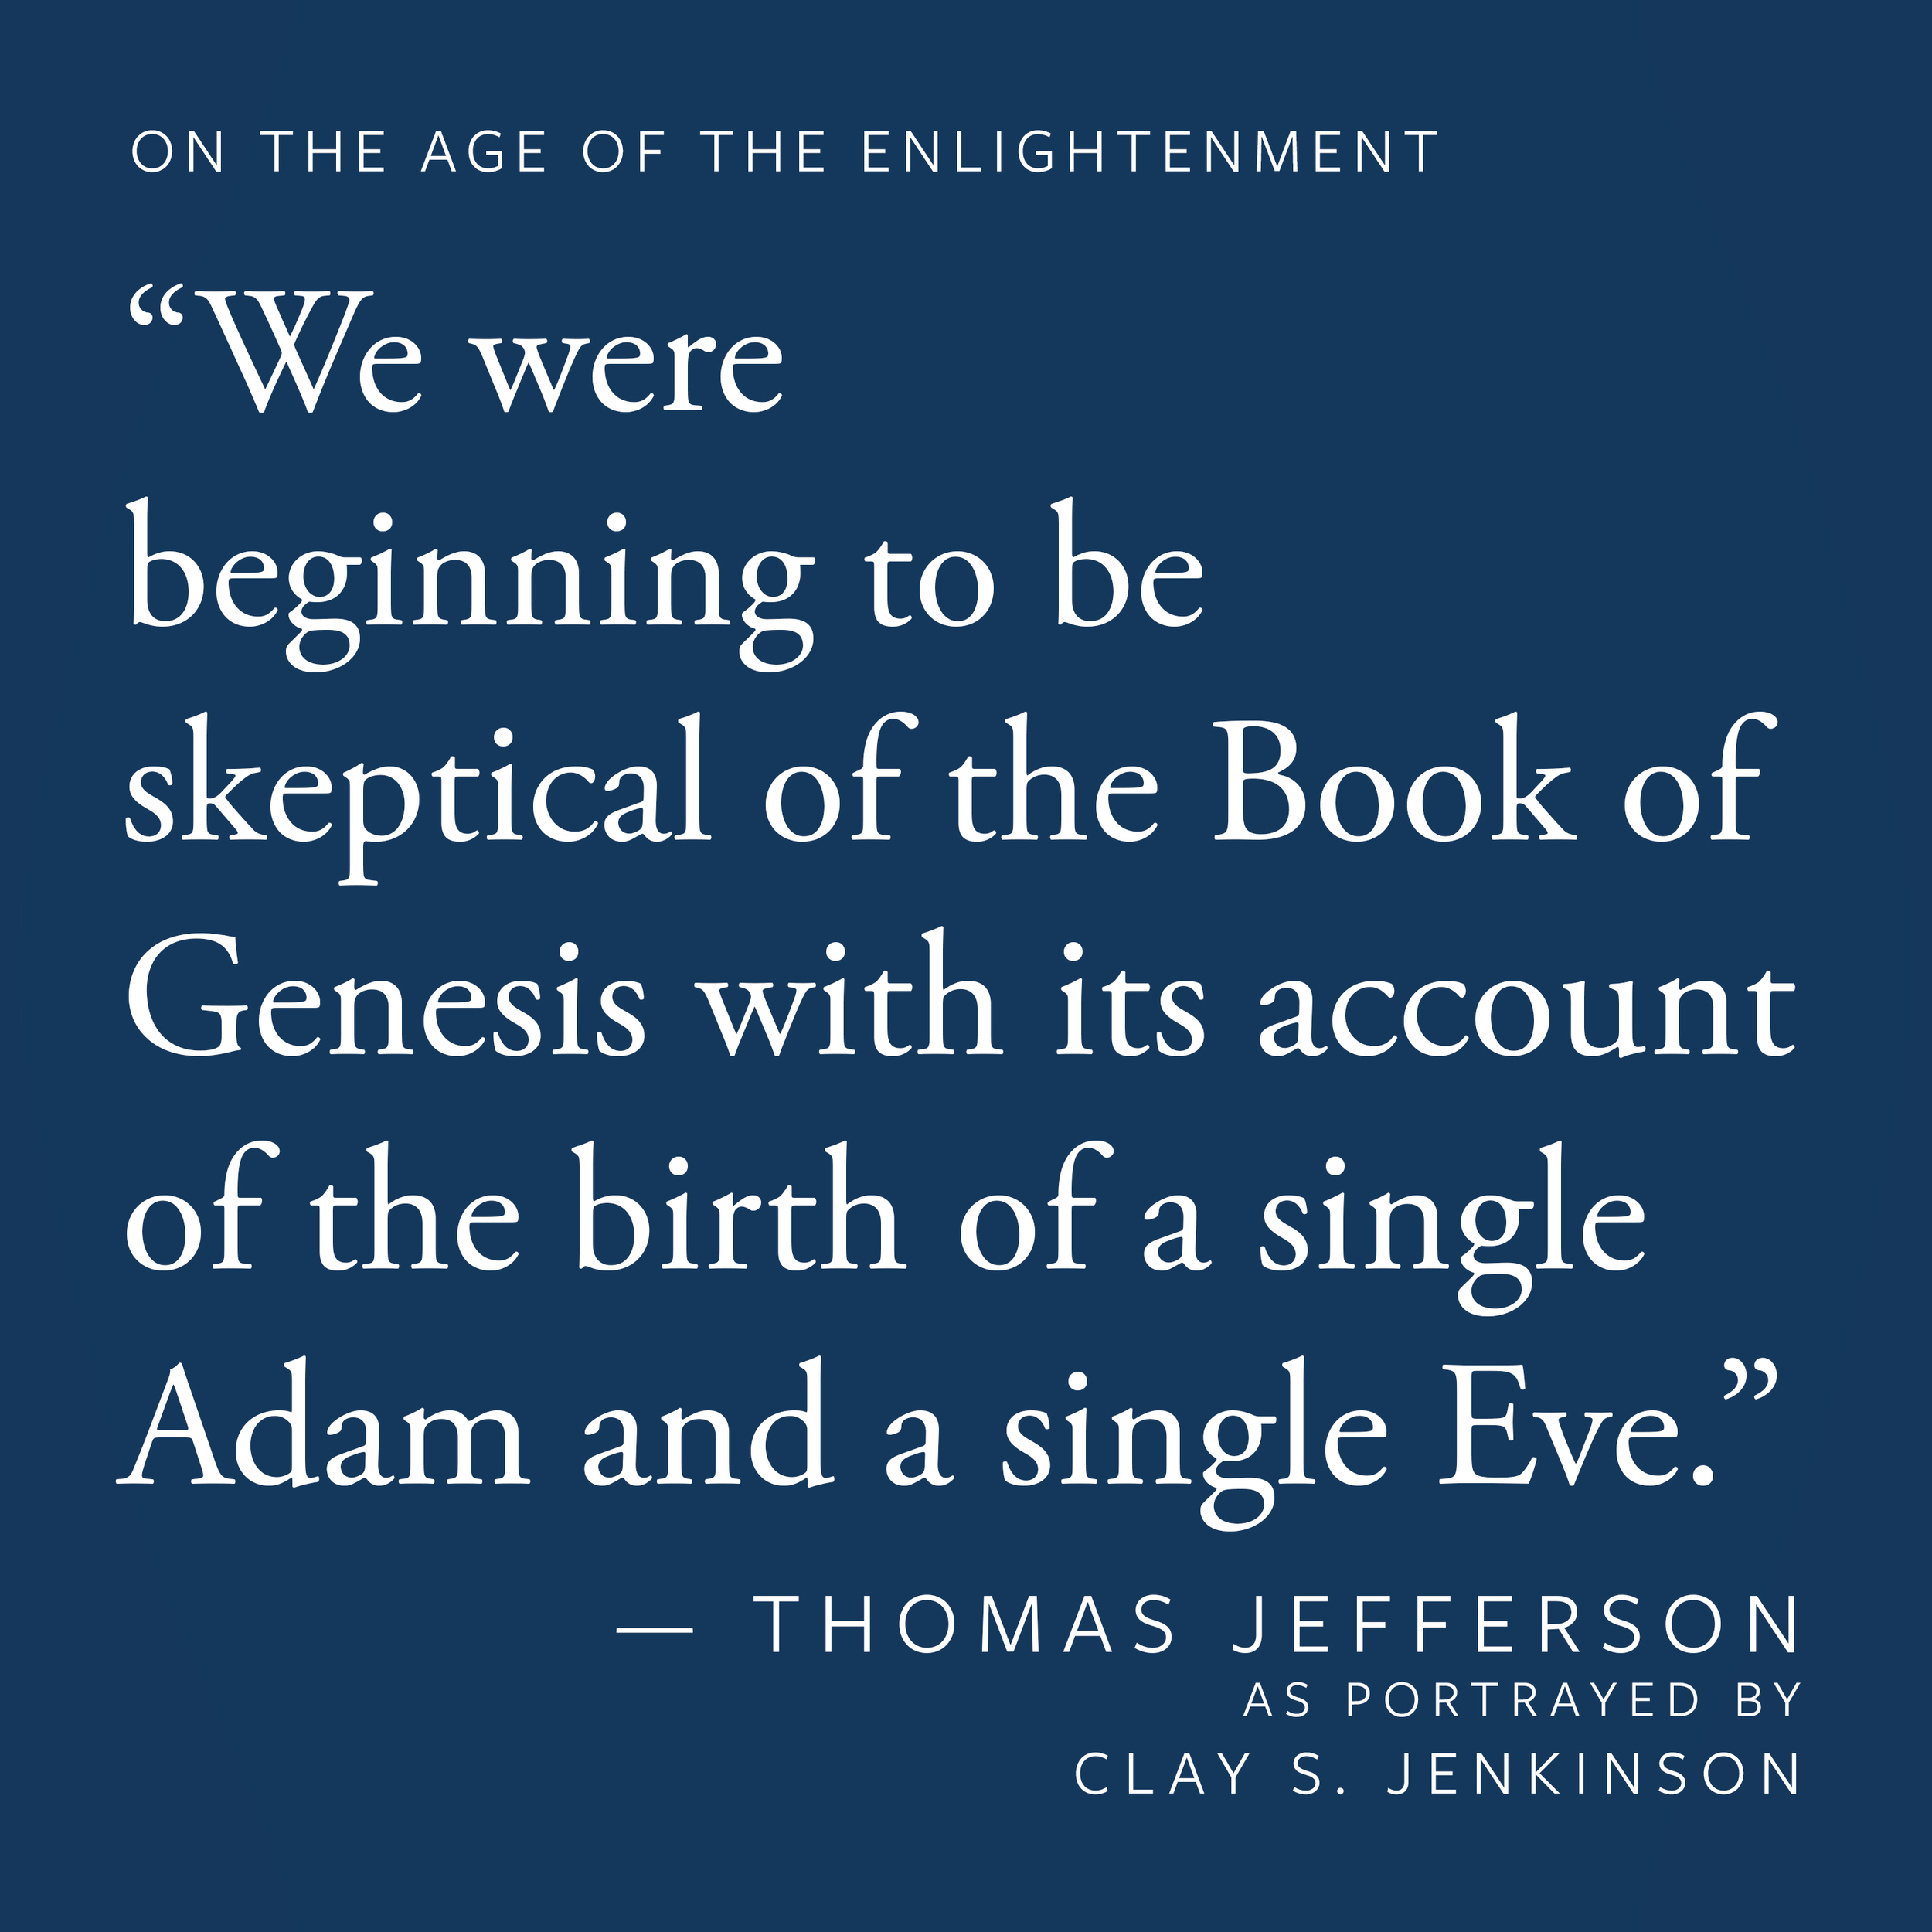 """We were beginning to be skeptical of the book of Genesis with its account of the birth of a single Adam and a single Eve."""